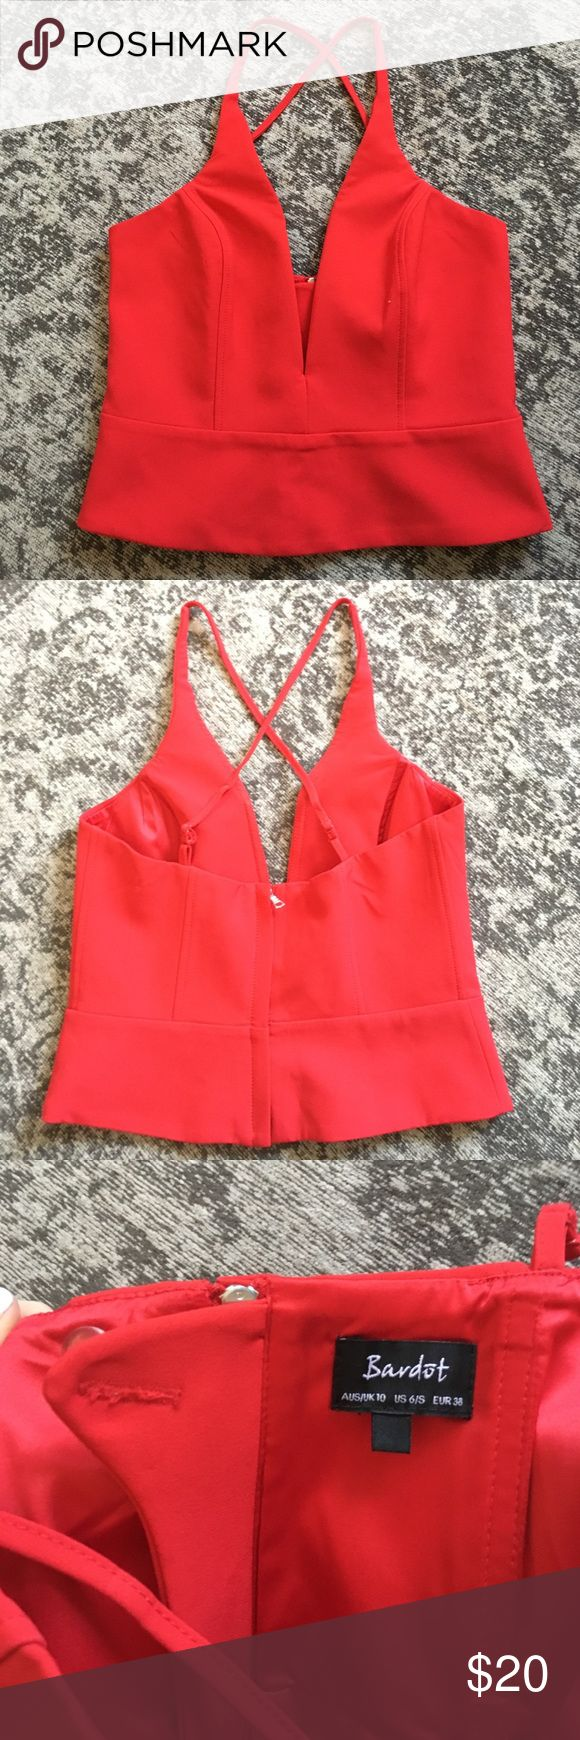 Red crop top Bright red , has boning, very thick and nice material. Adjustable straps. Worn once. Size euro 6 (American xs/s) Bardot Tops Crop Tops